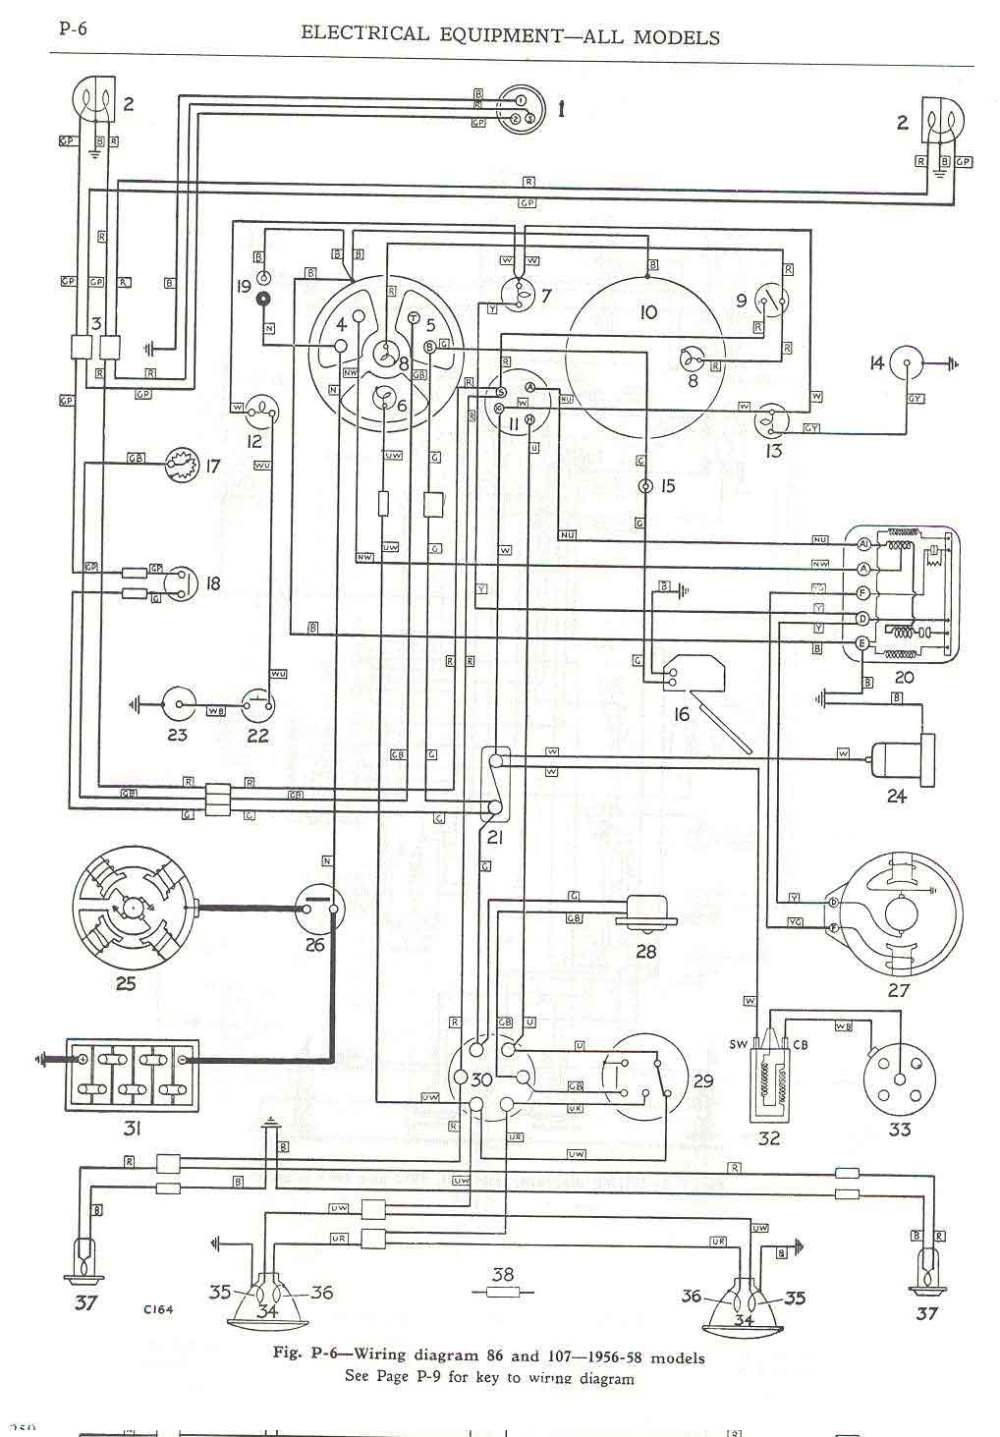 medium resolution of  wiring diagram 86 and 107 1956 58 models